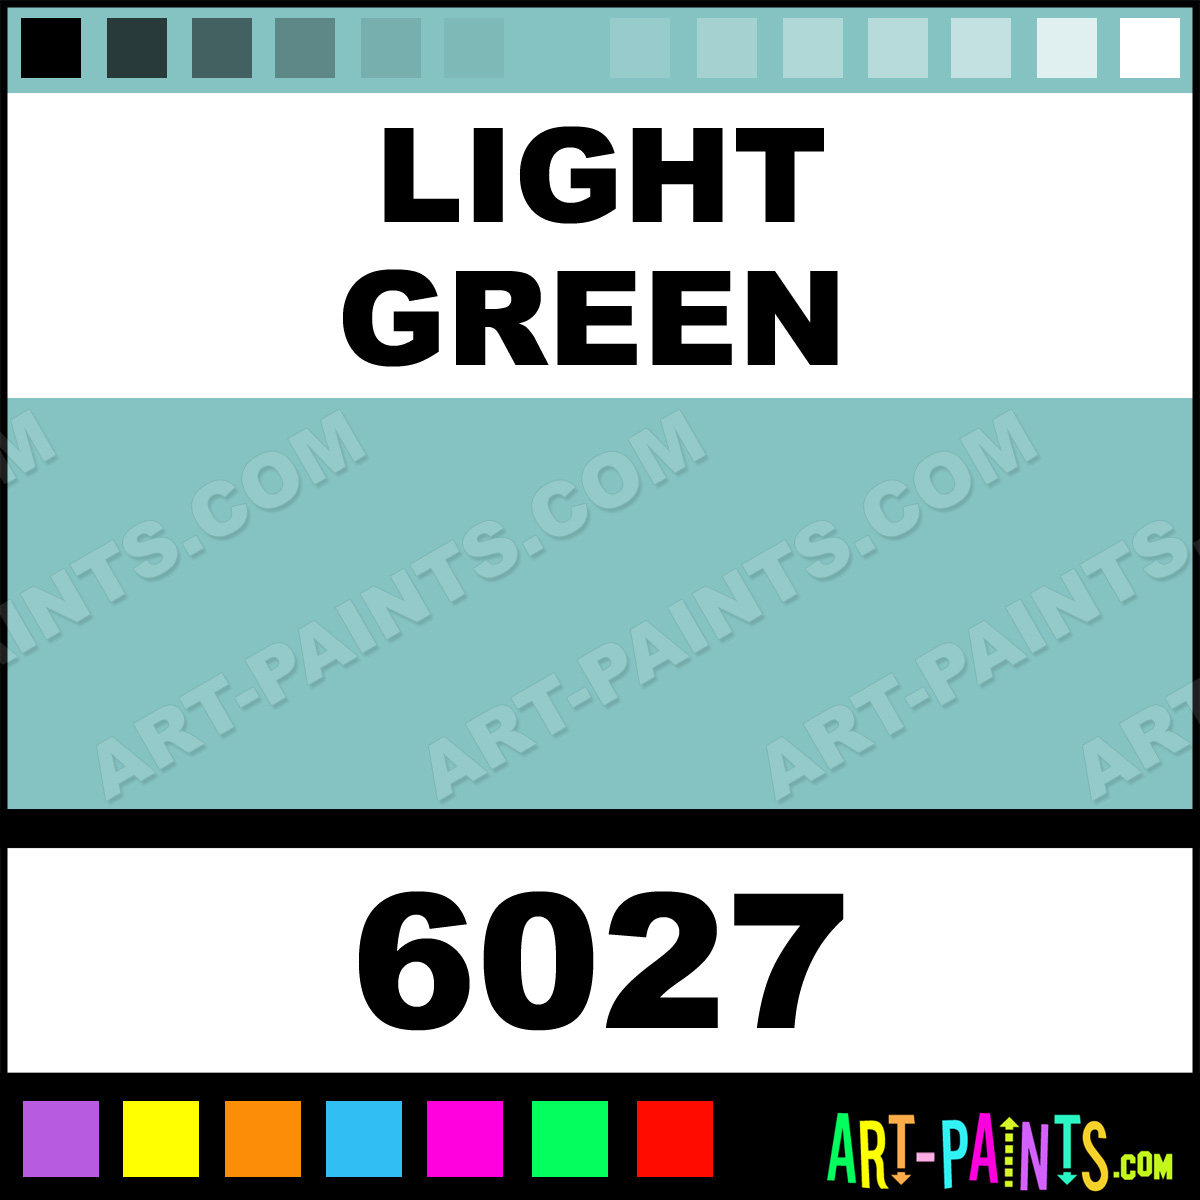 Light Green Glossy Acrylic Airbrush Spray Paints 6027 Light Green Paint Light Green Color